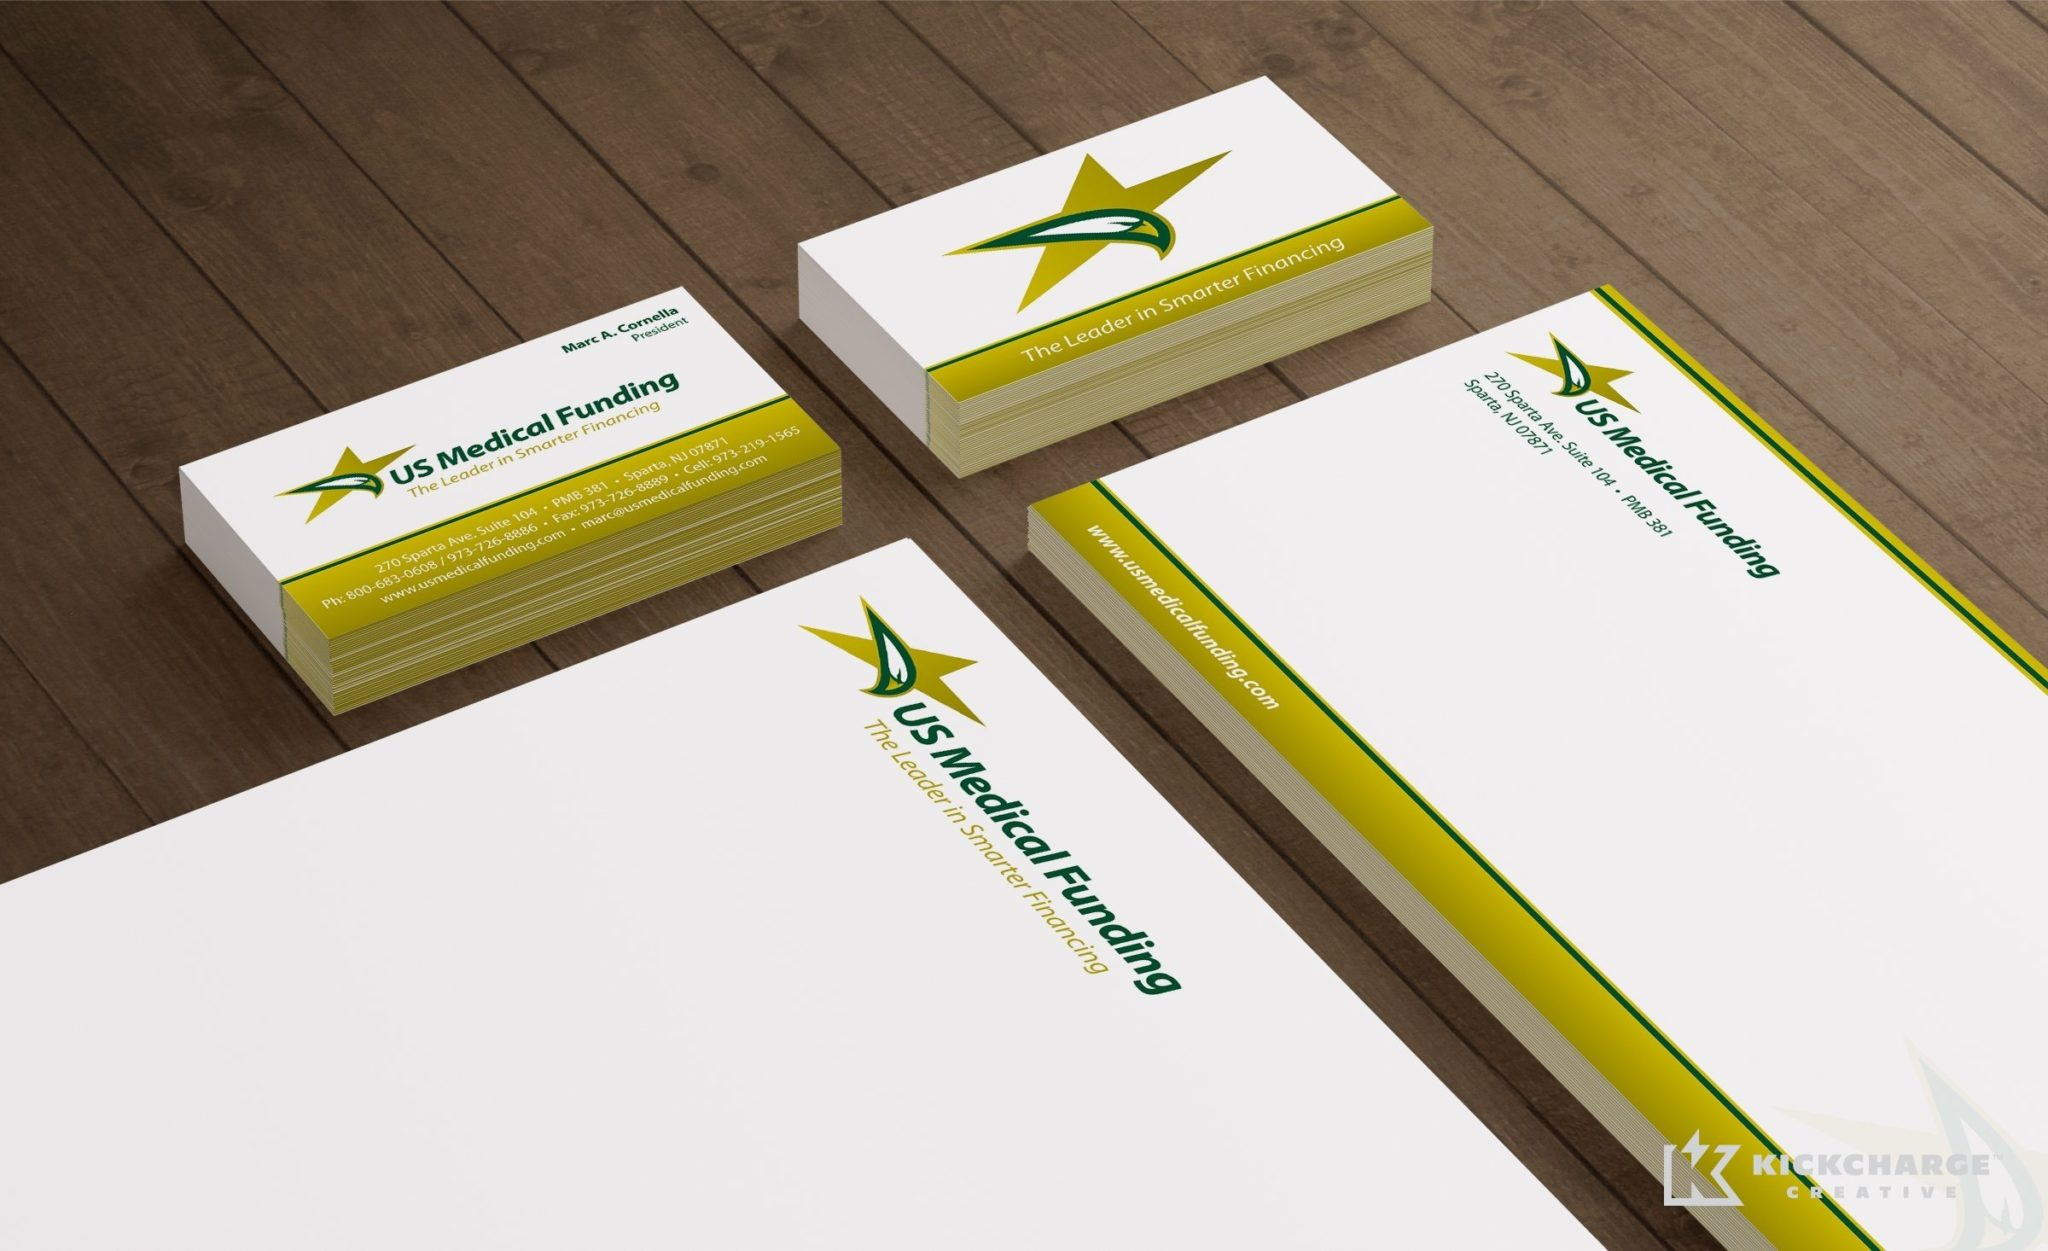 Stationery design for an NJ-based medical funding company.